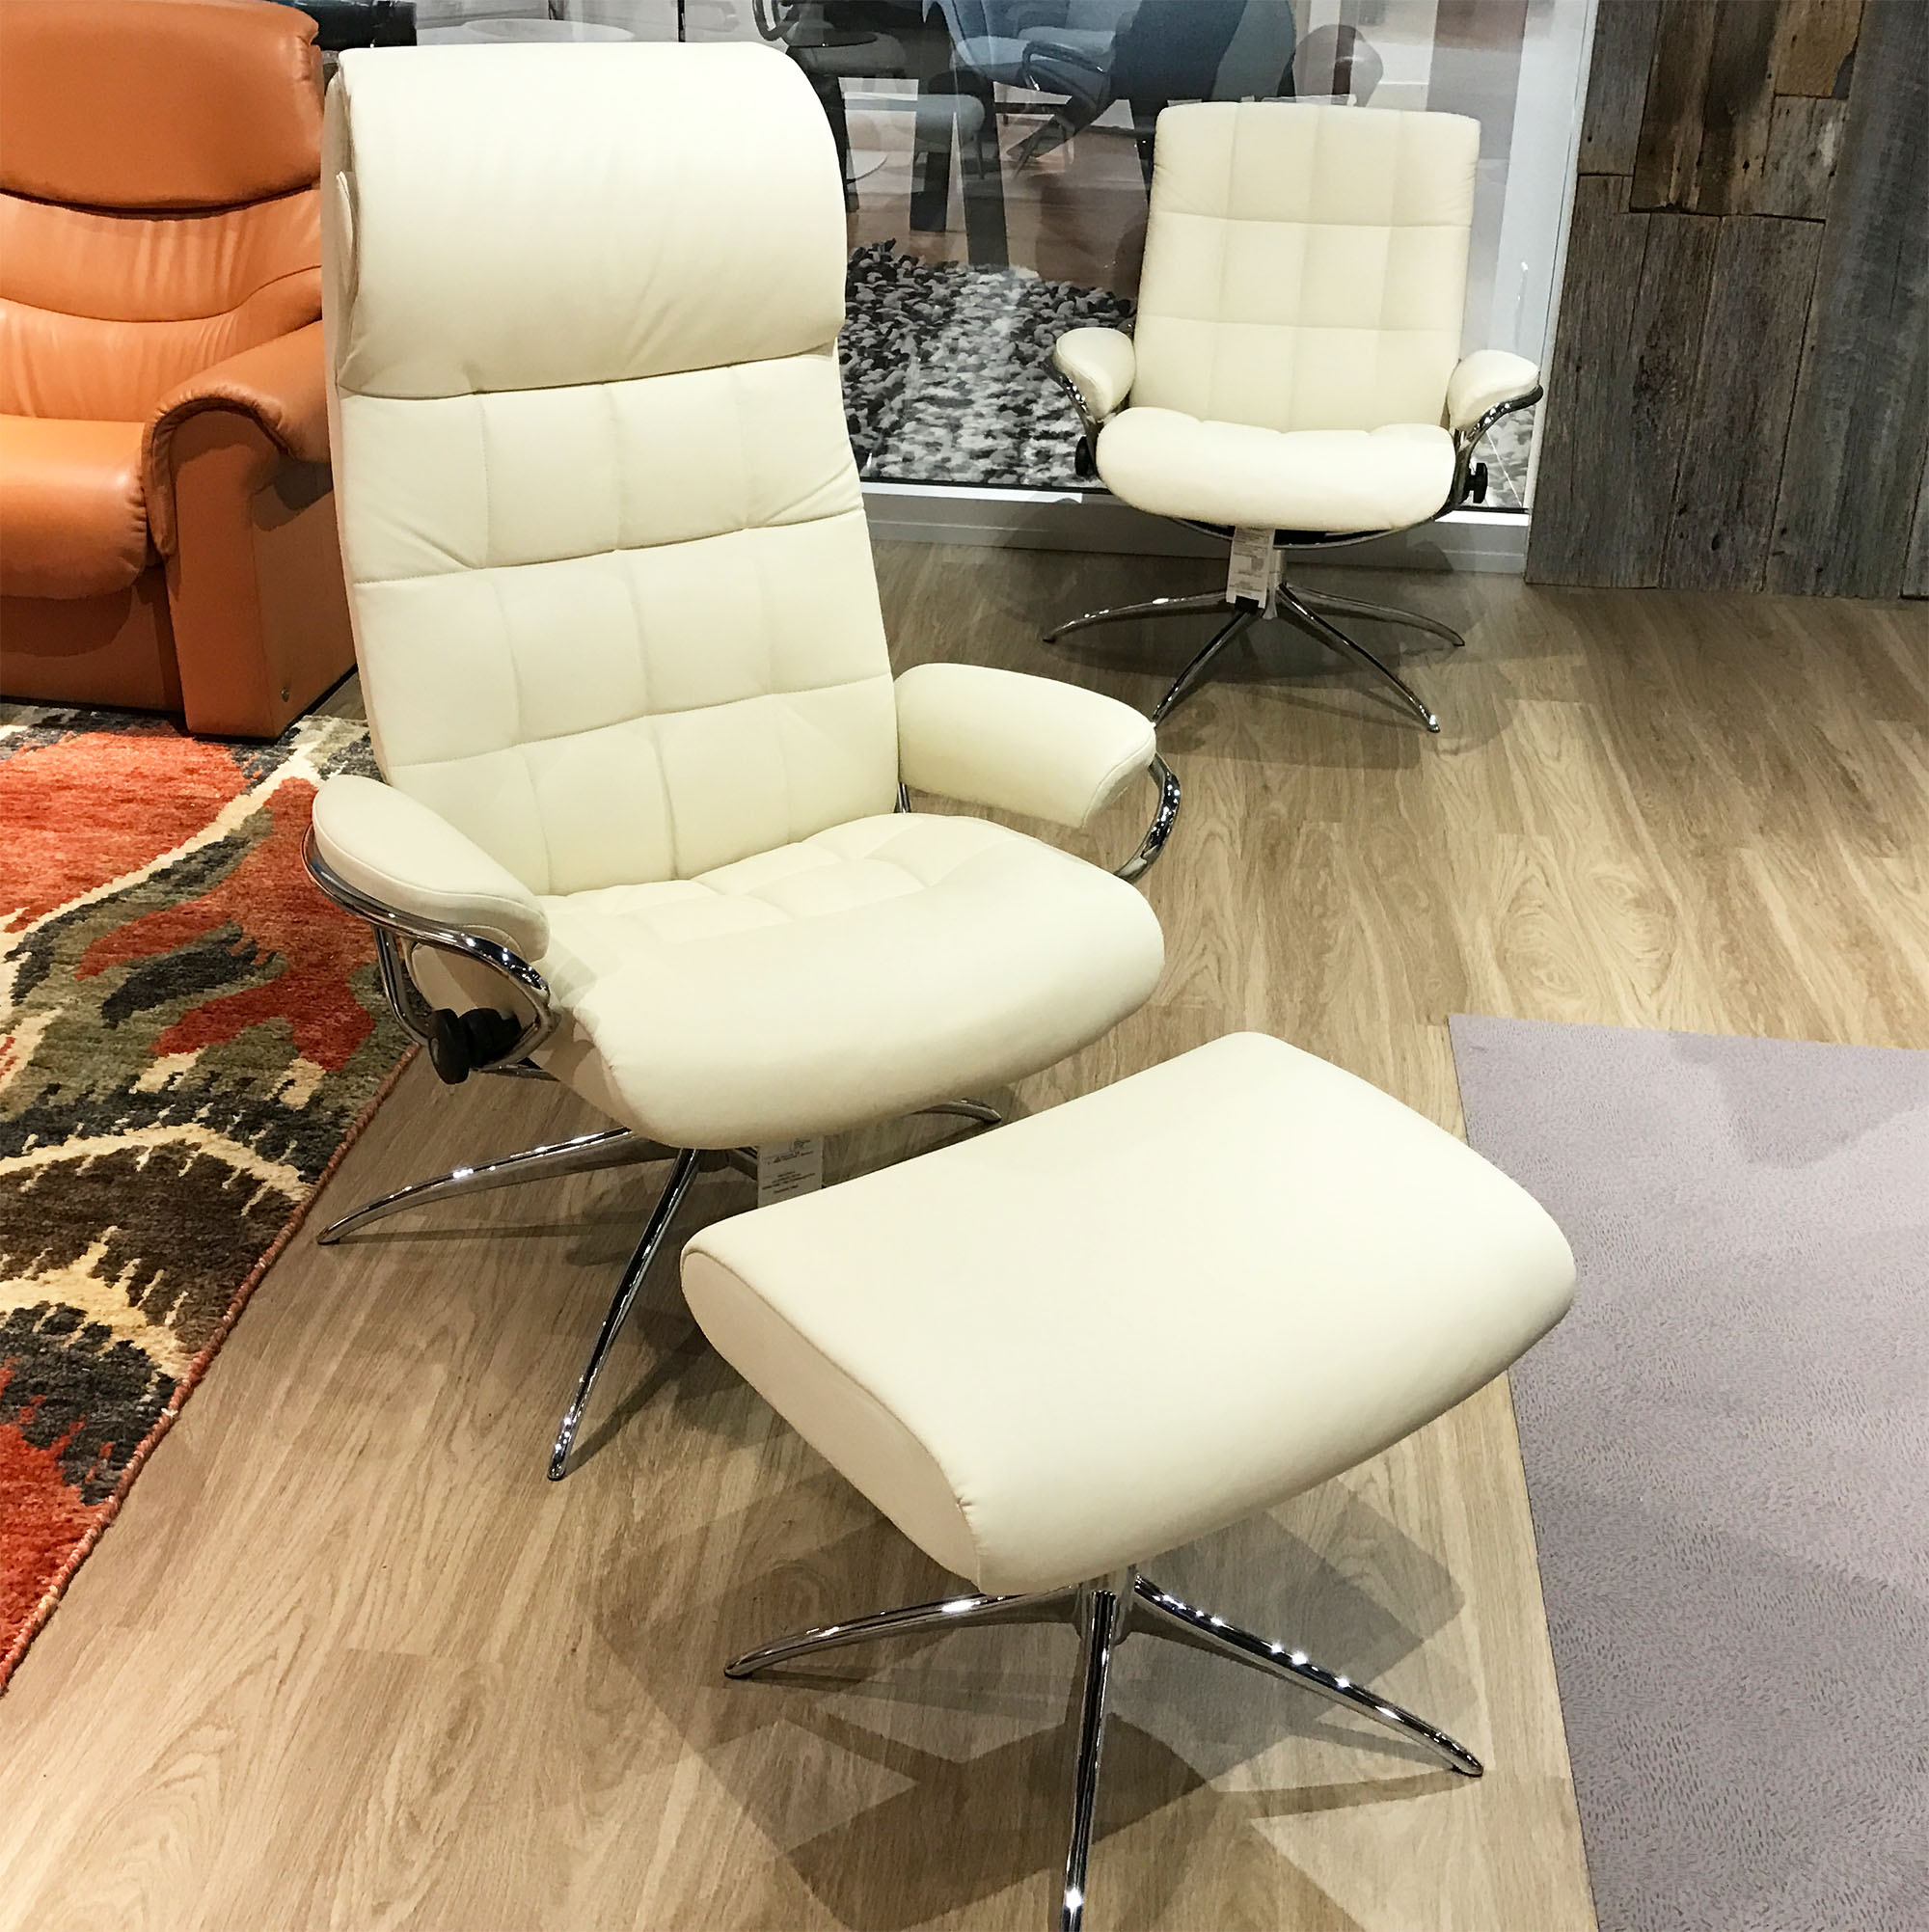 Stressless London High Back Recliner Chair And Ottoman In Paloma Vanilla  White Leather By Ekornes